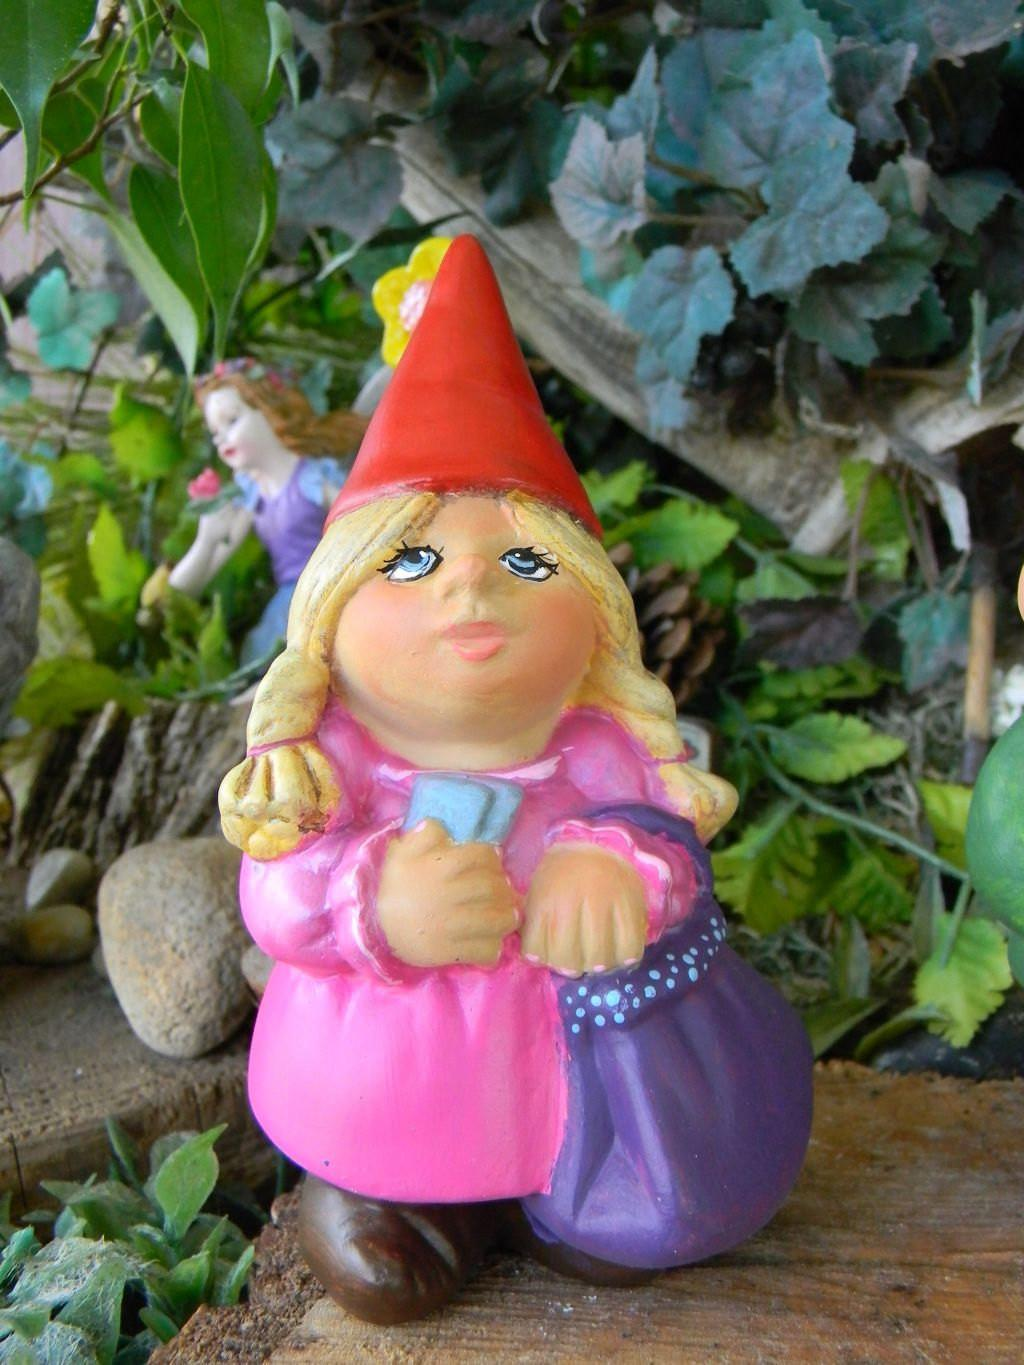 Garden Gnome Lady Female Woman Traveling